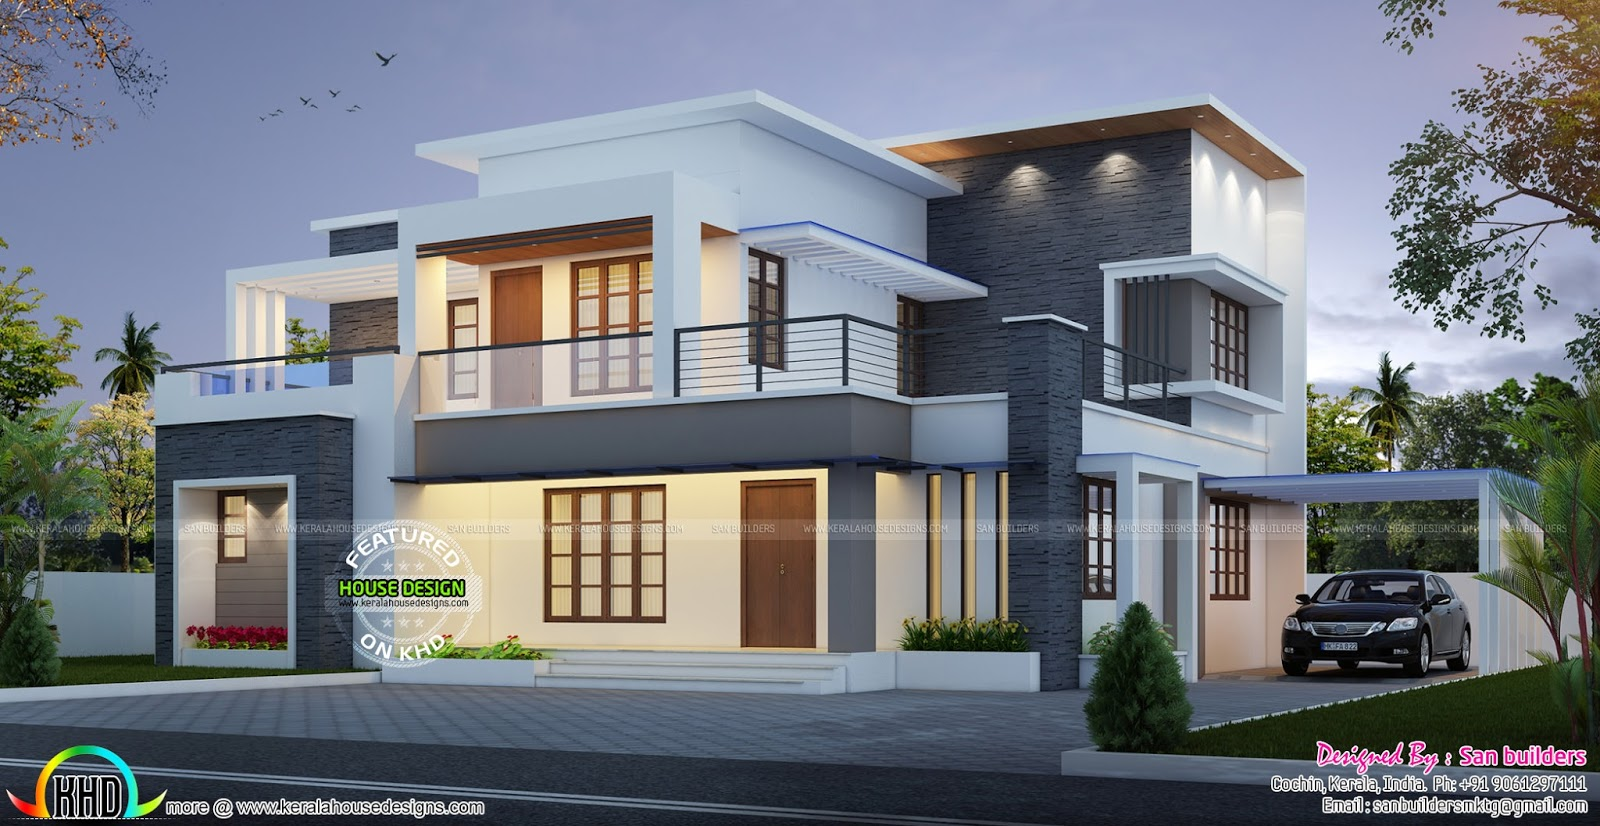 House plan and elevation by san builders kerala home for Contemporary home elevations